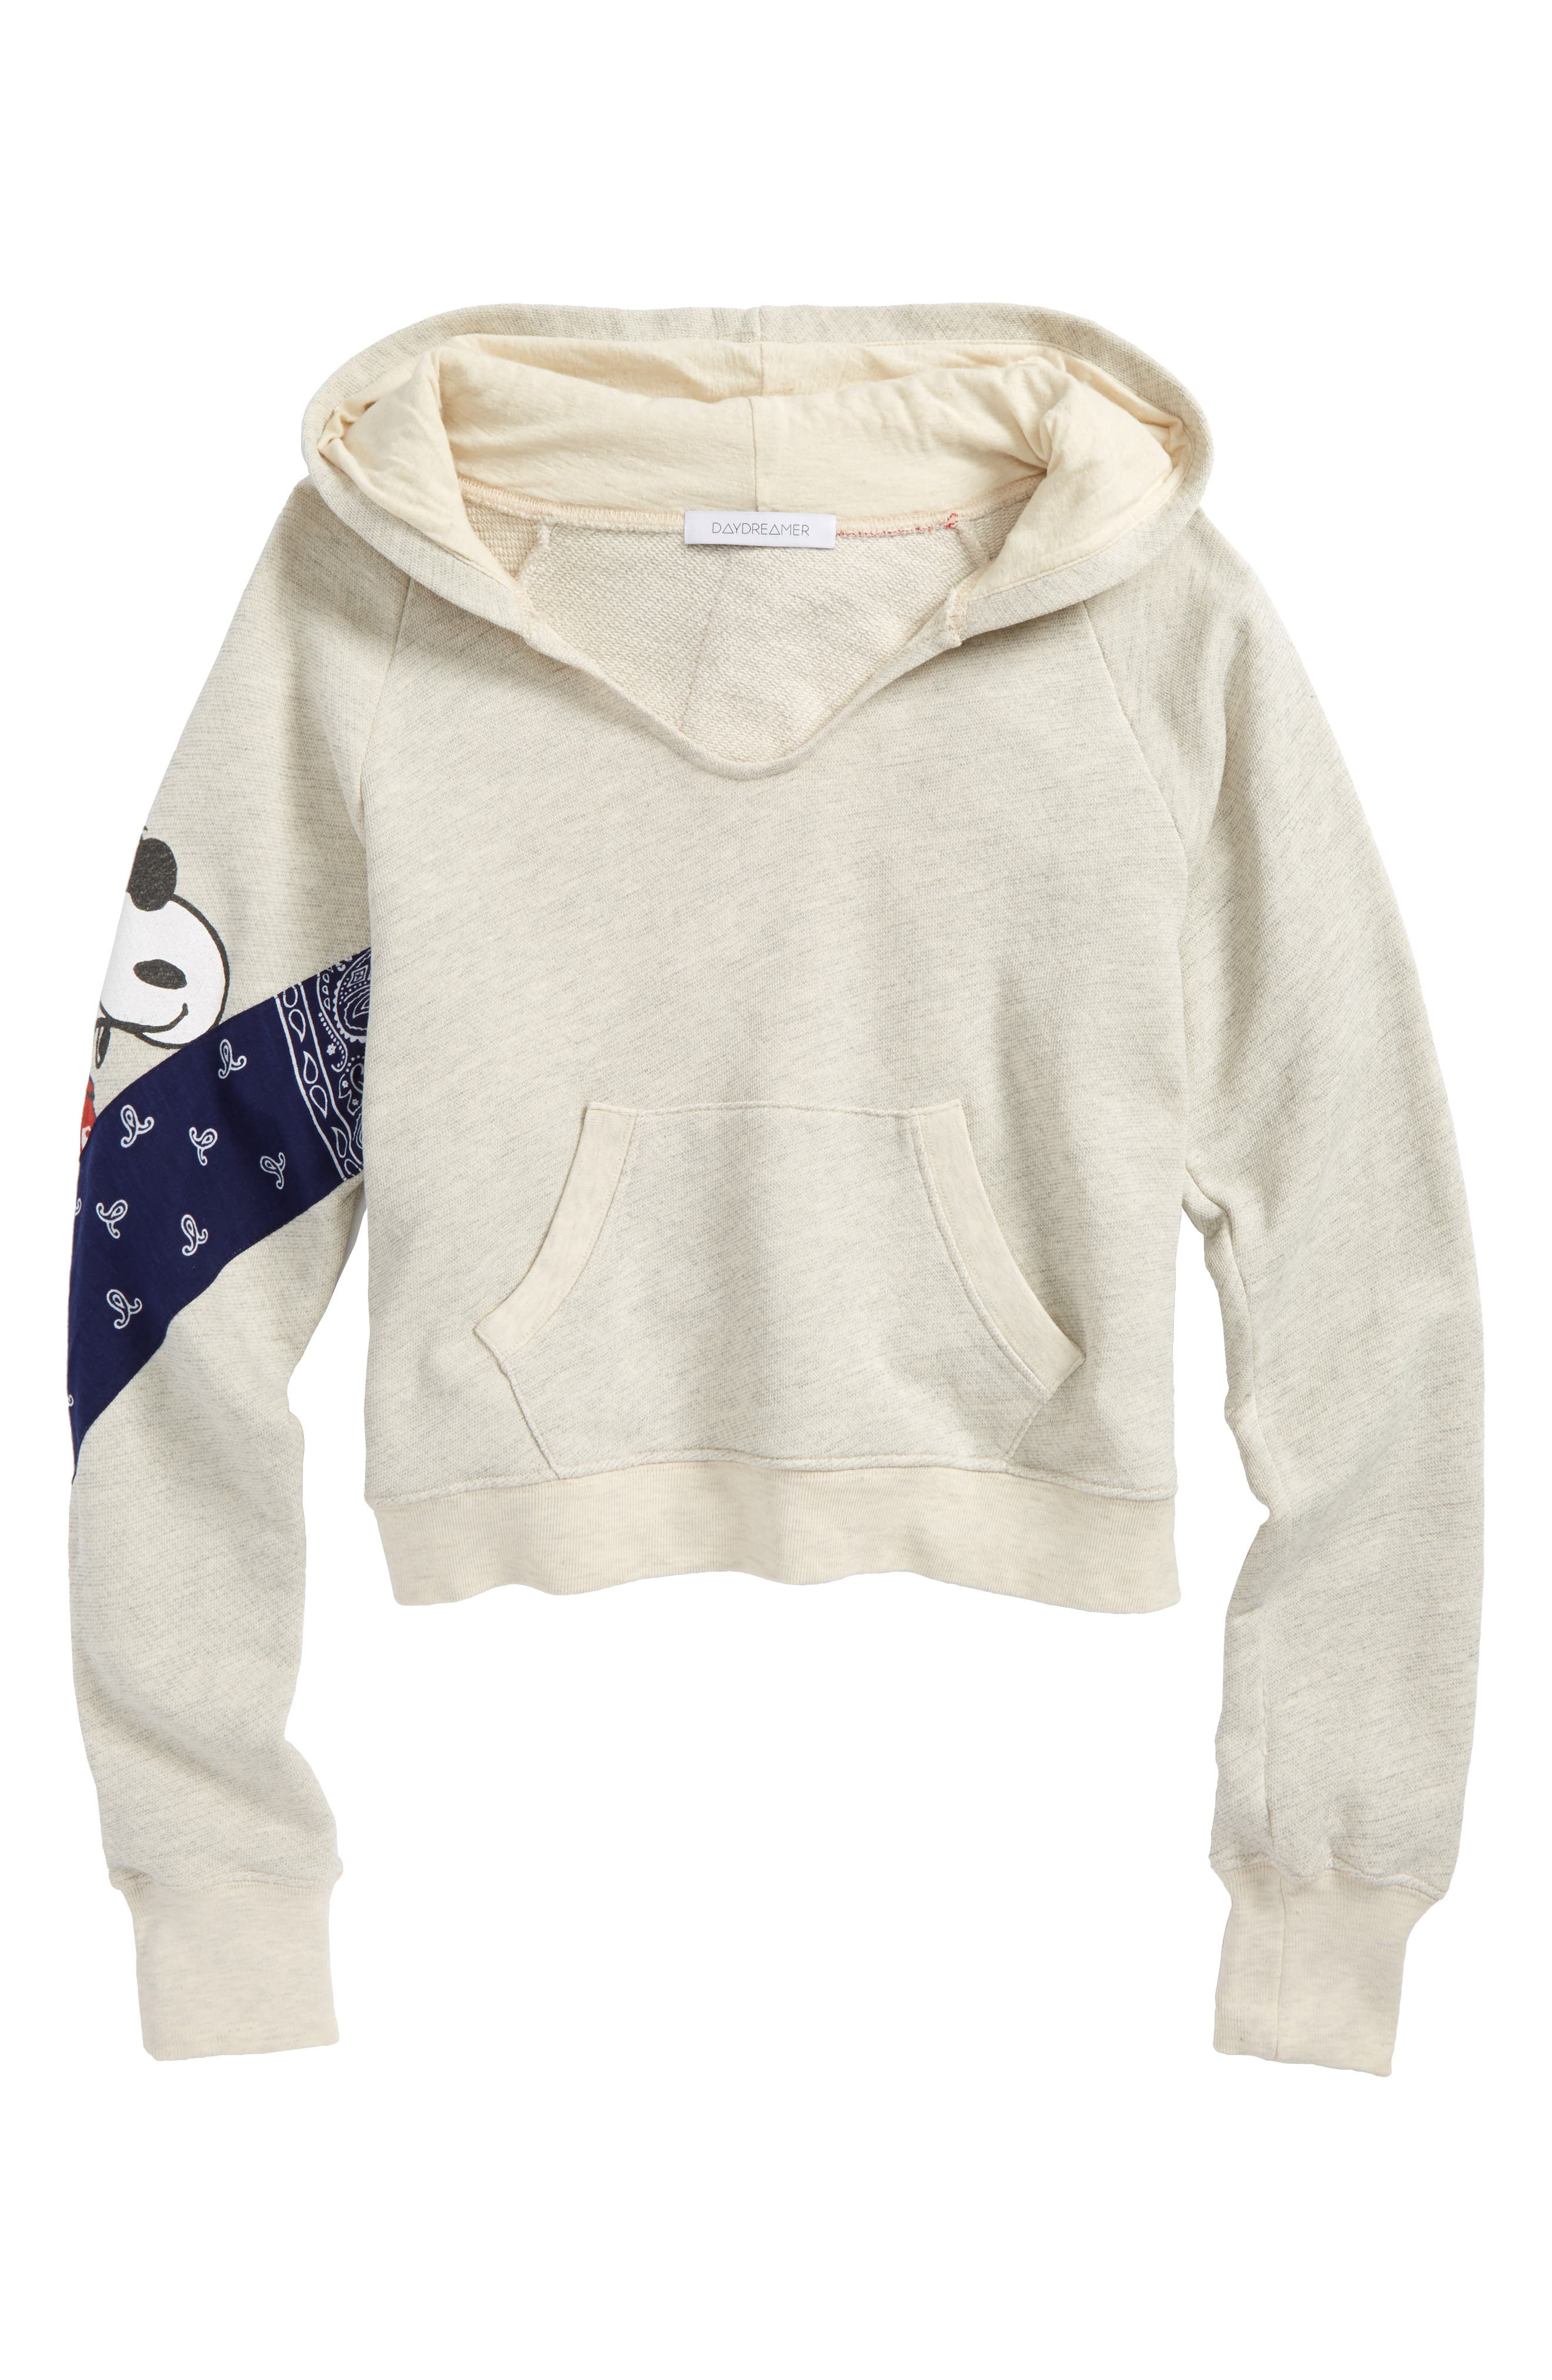 Joe Cool Hoodie,                             Alternate thumbnail 6, color,                             TAN